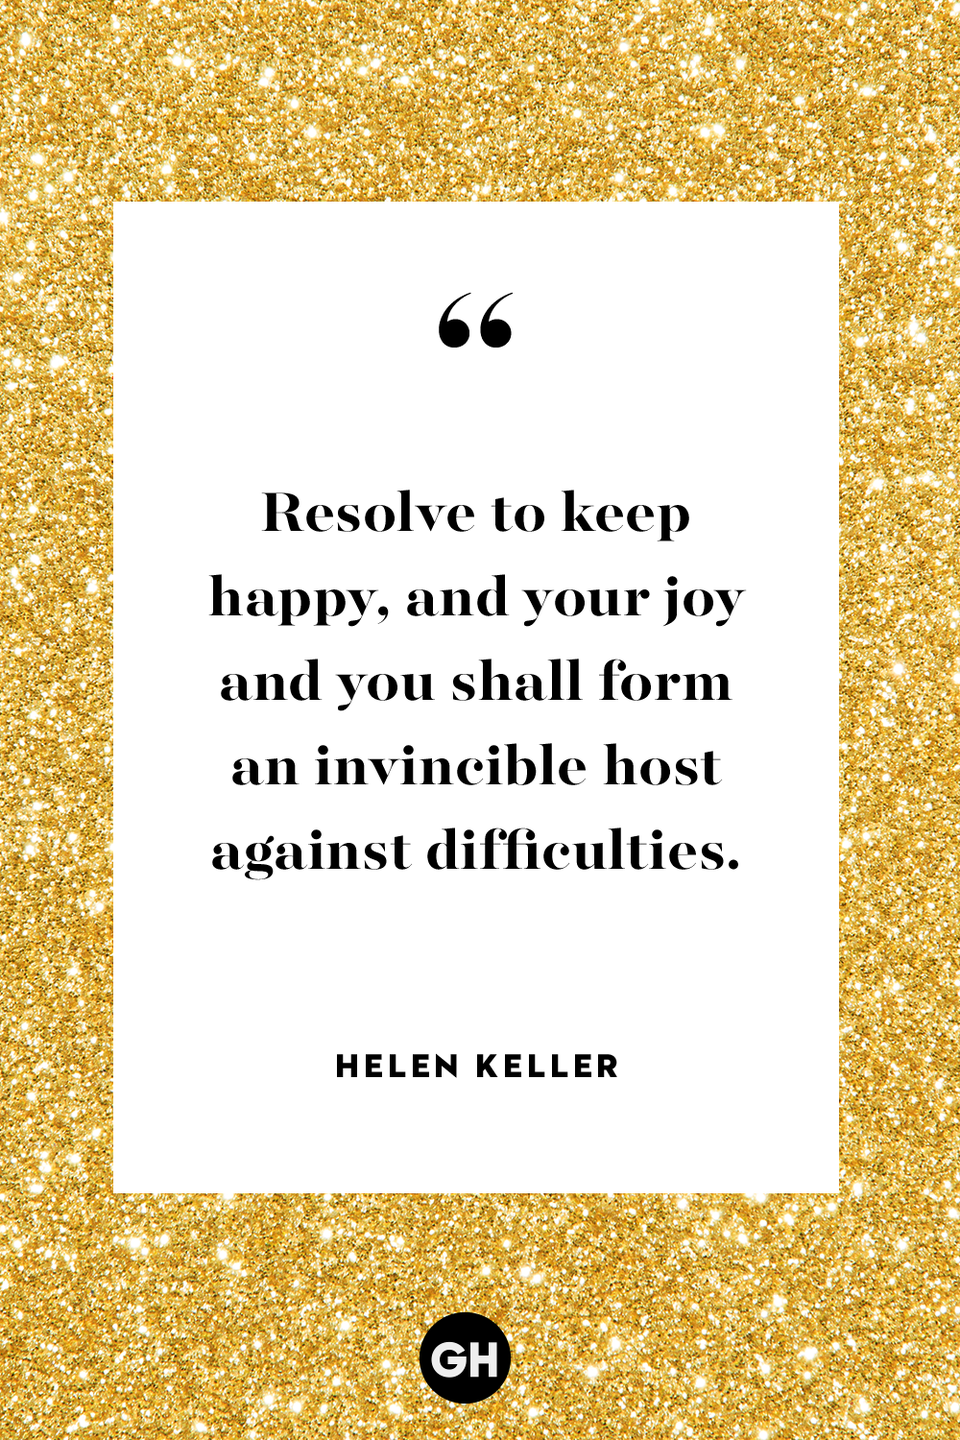 <p>Resolve to keep happy, and your joy and you shall form an invincible host against difficulties. </p>